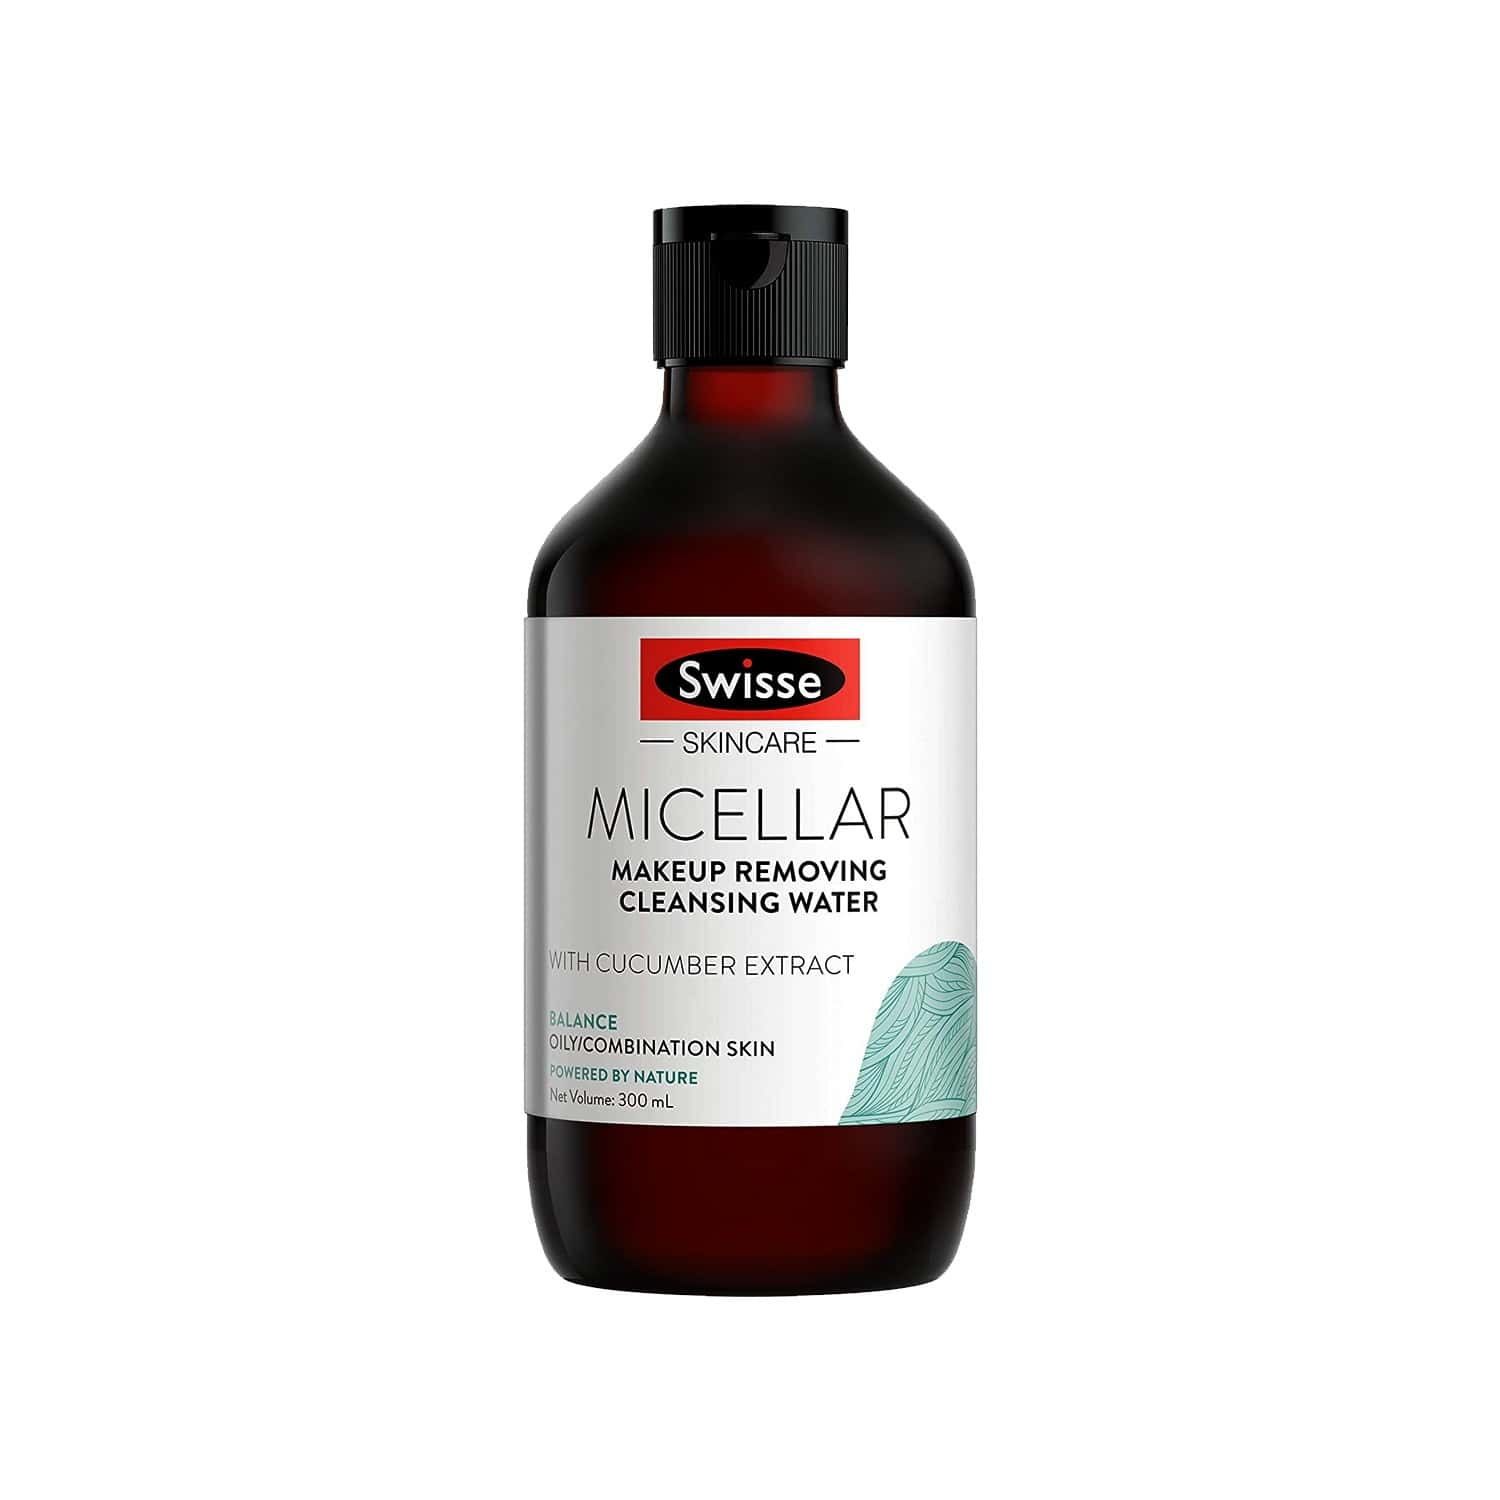 Swisse Skincare Balanced Micellar Cleansing & Makeup Removing Water With Cucumber Extract - 300ml (for Oily/combination Skin)